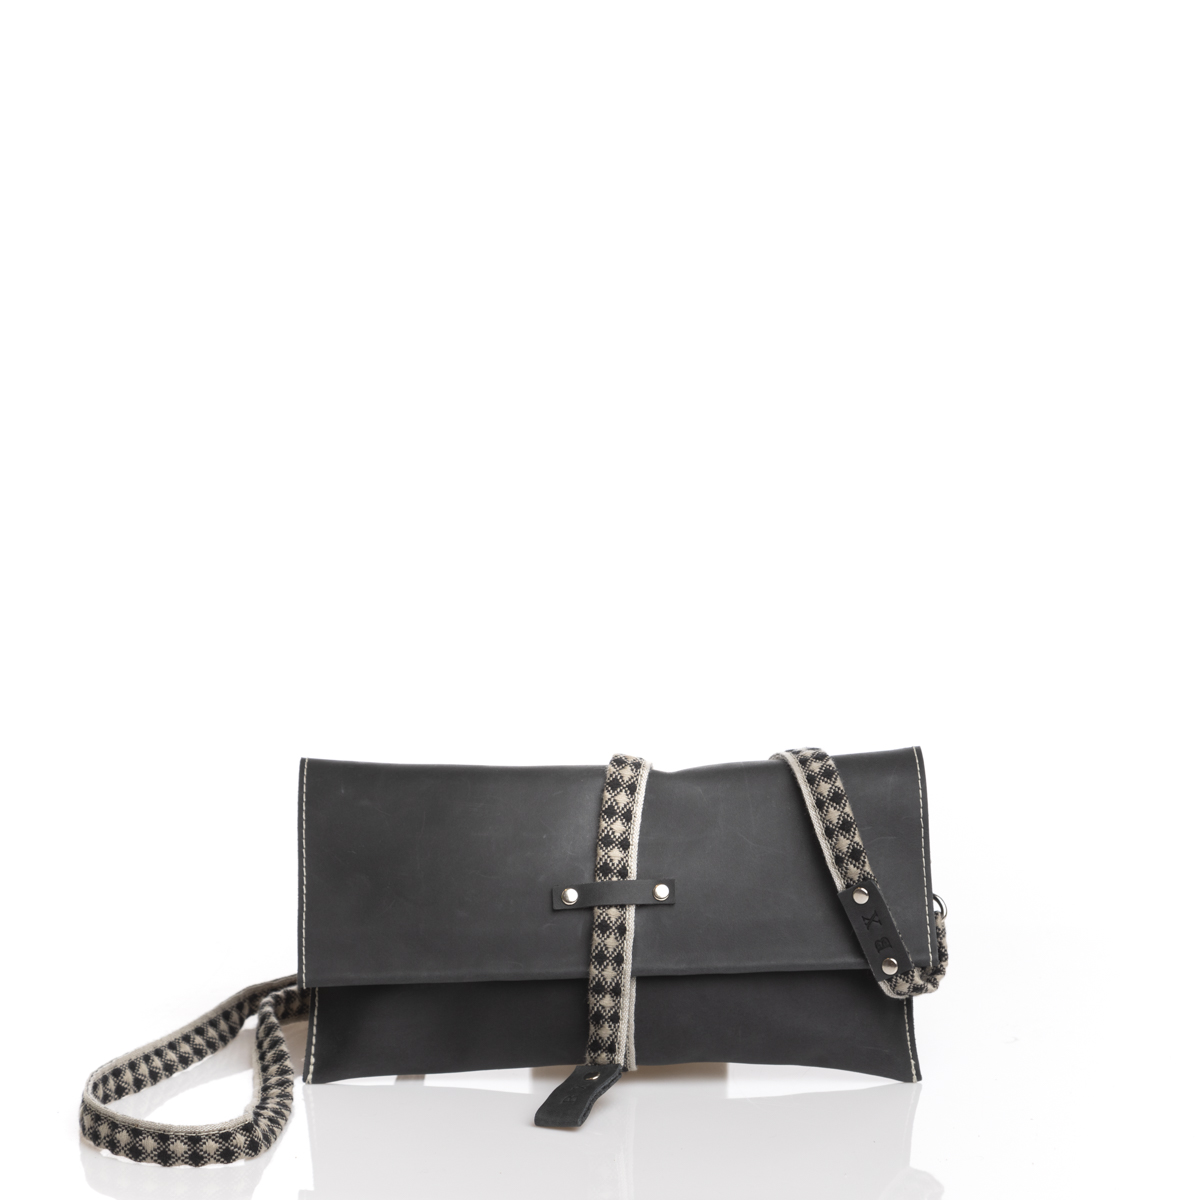 MINI BOSLO NEGRO DETALLES ÉTNICOS, MINI BAG BLACK & GRAY